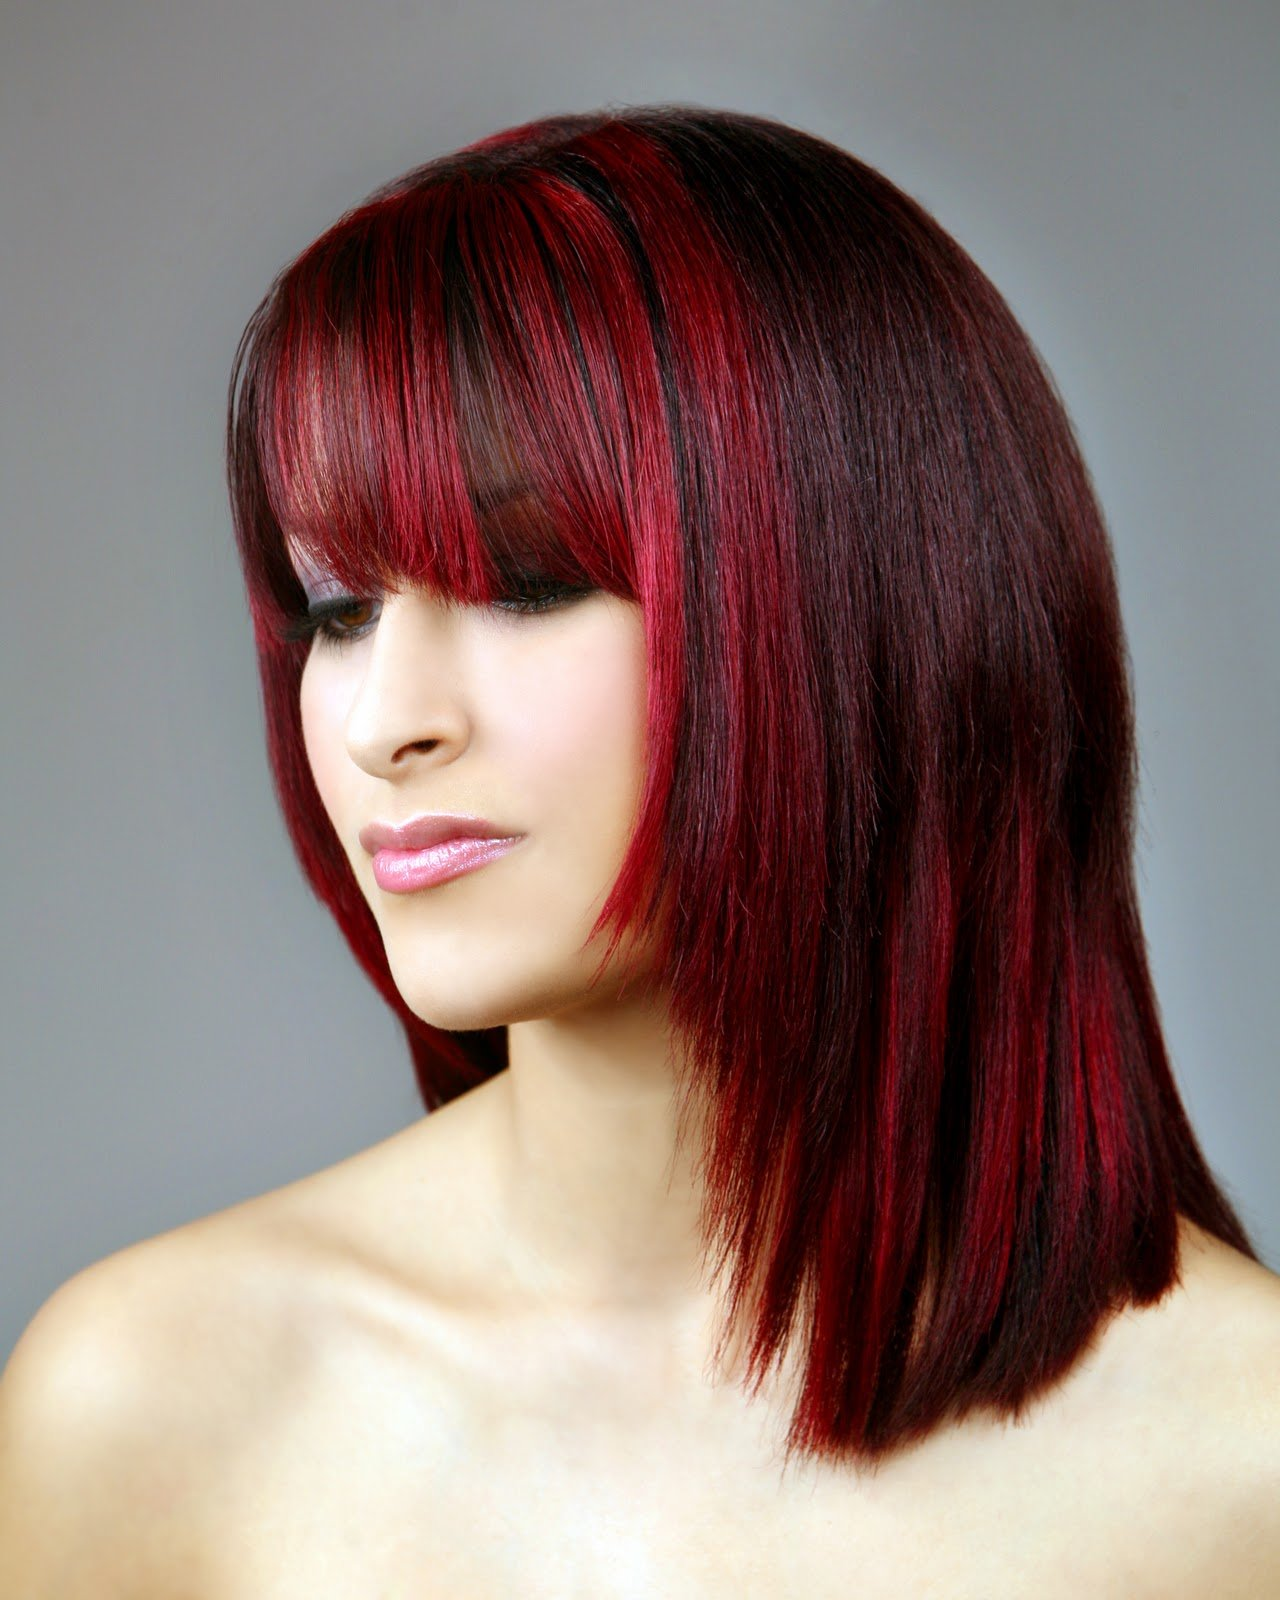 Free Red Hair Color Womens Interests Beauty Products Wallpaper